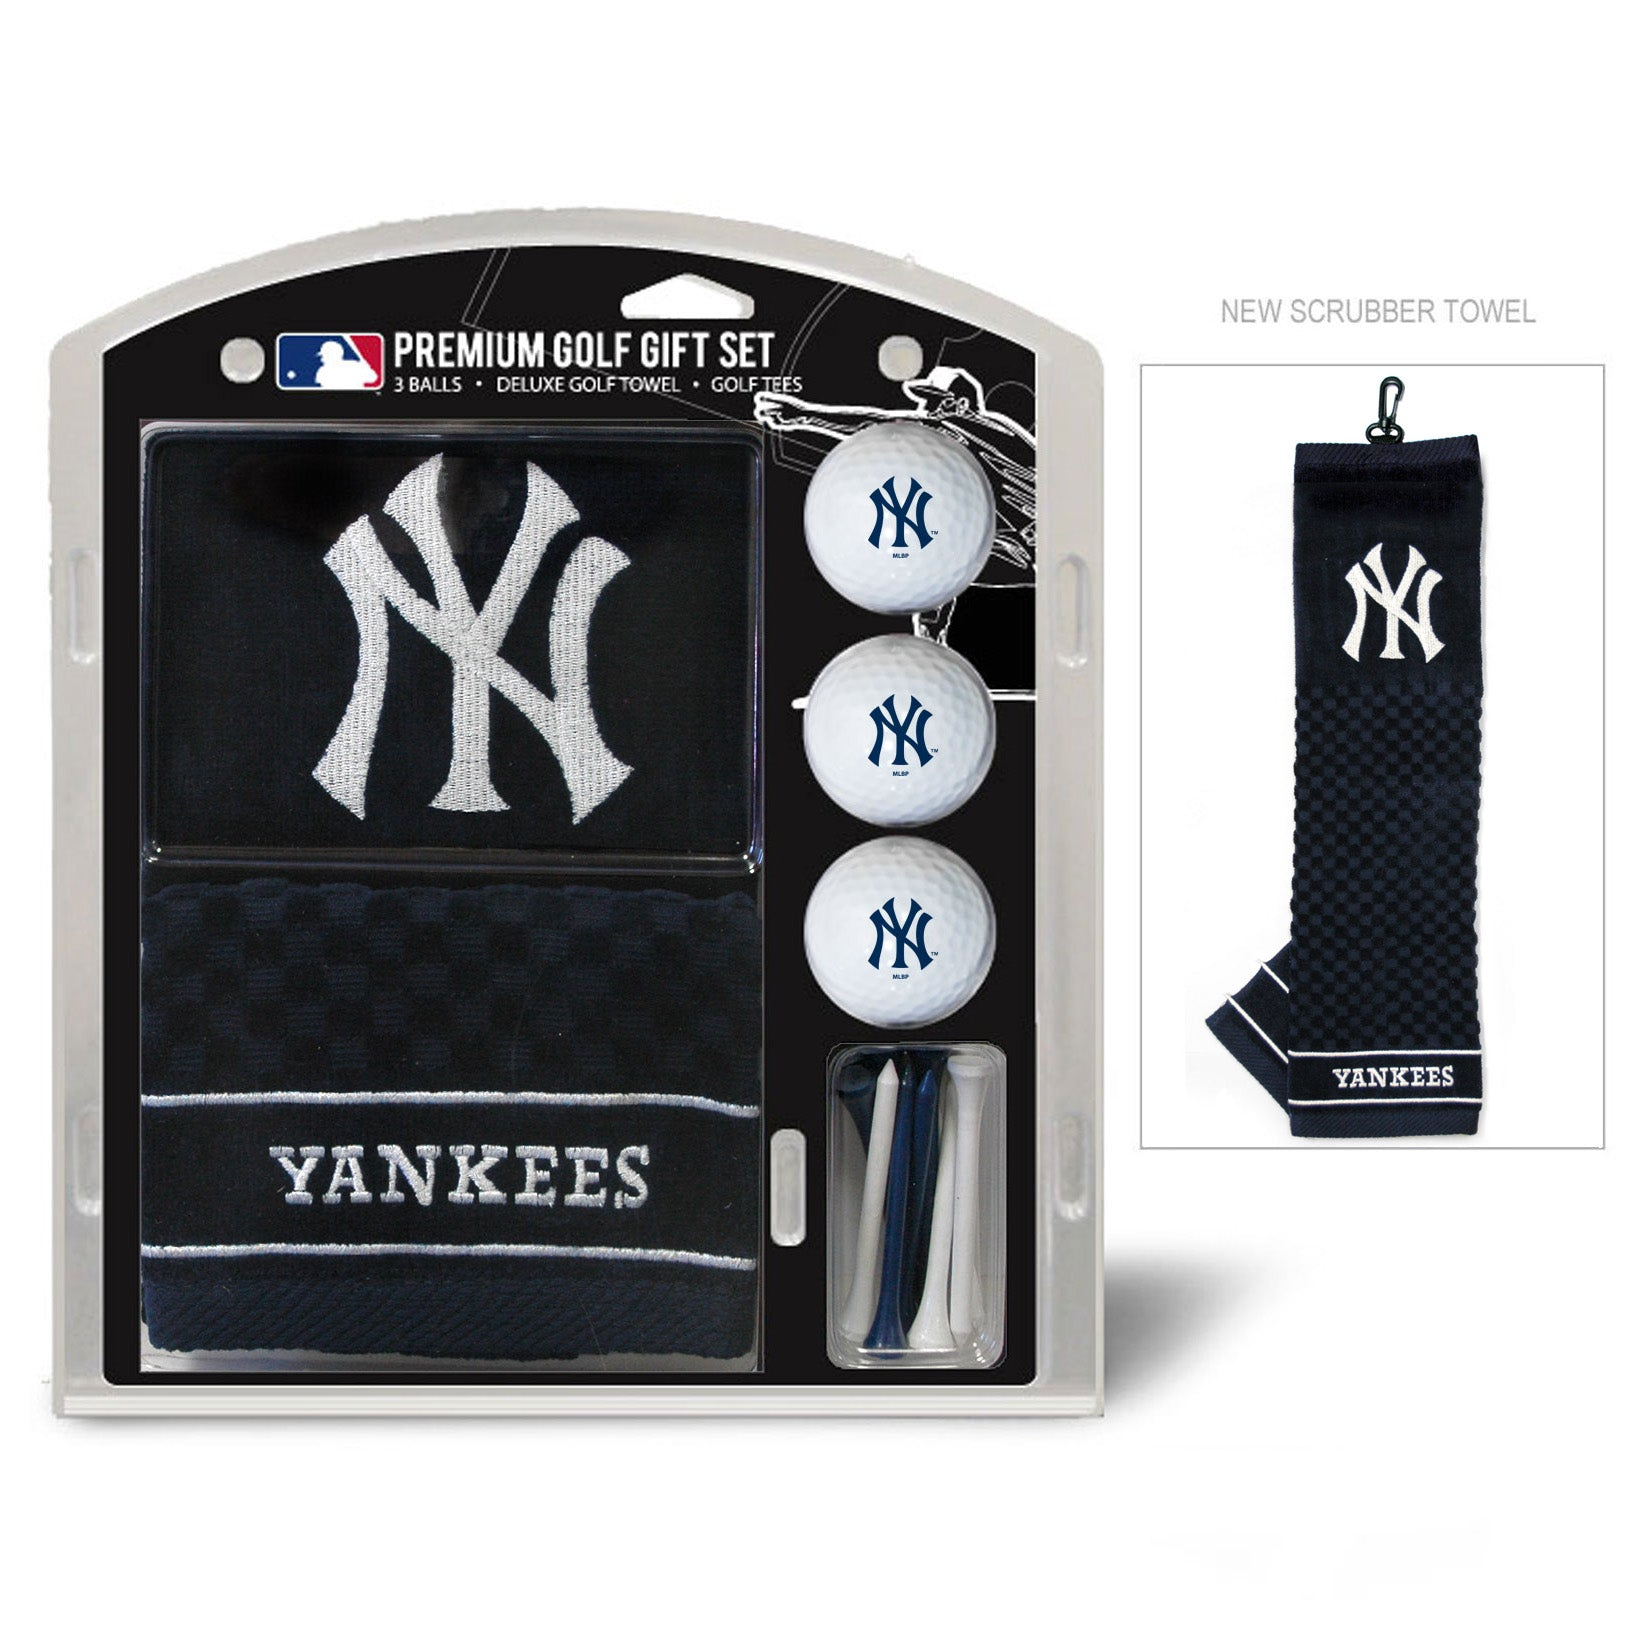 New York Yankees Golf Gift Set with Embroidered Towel